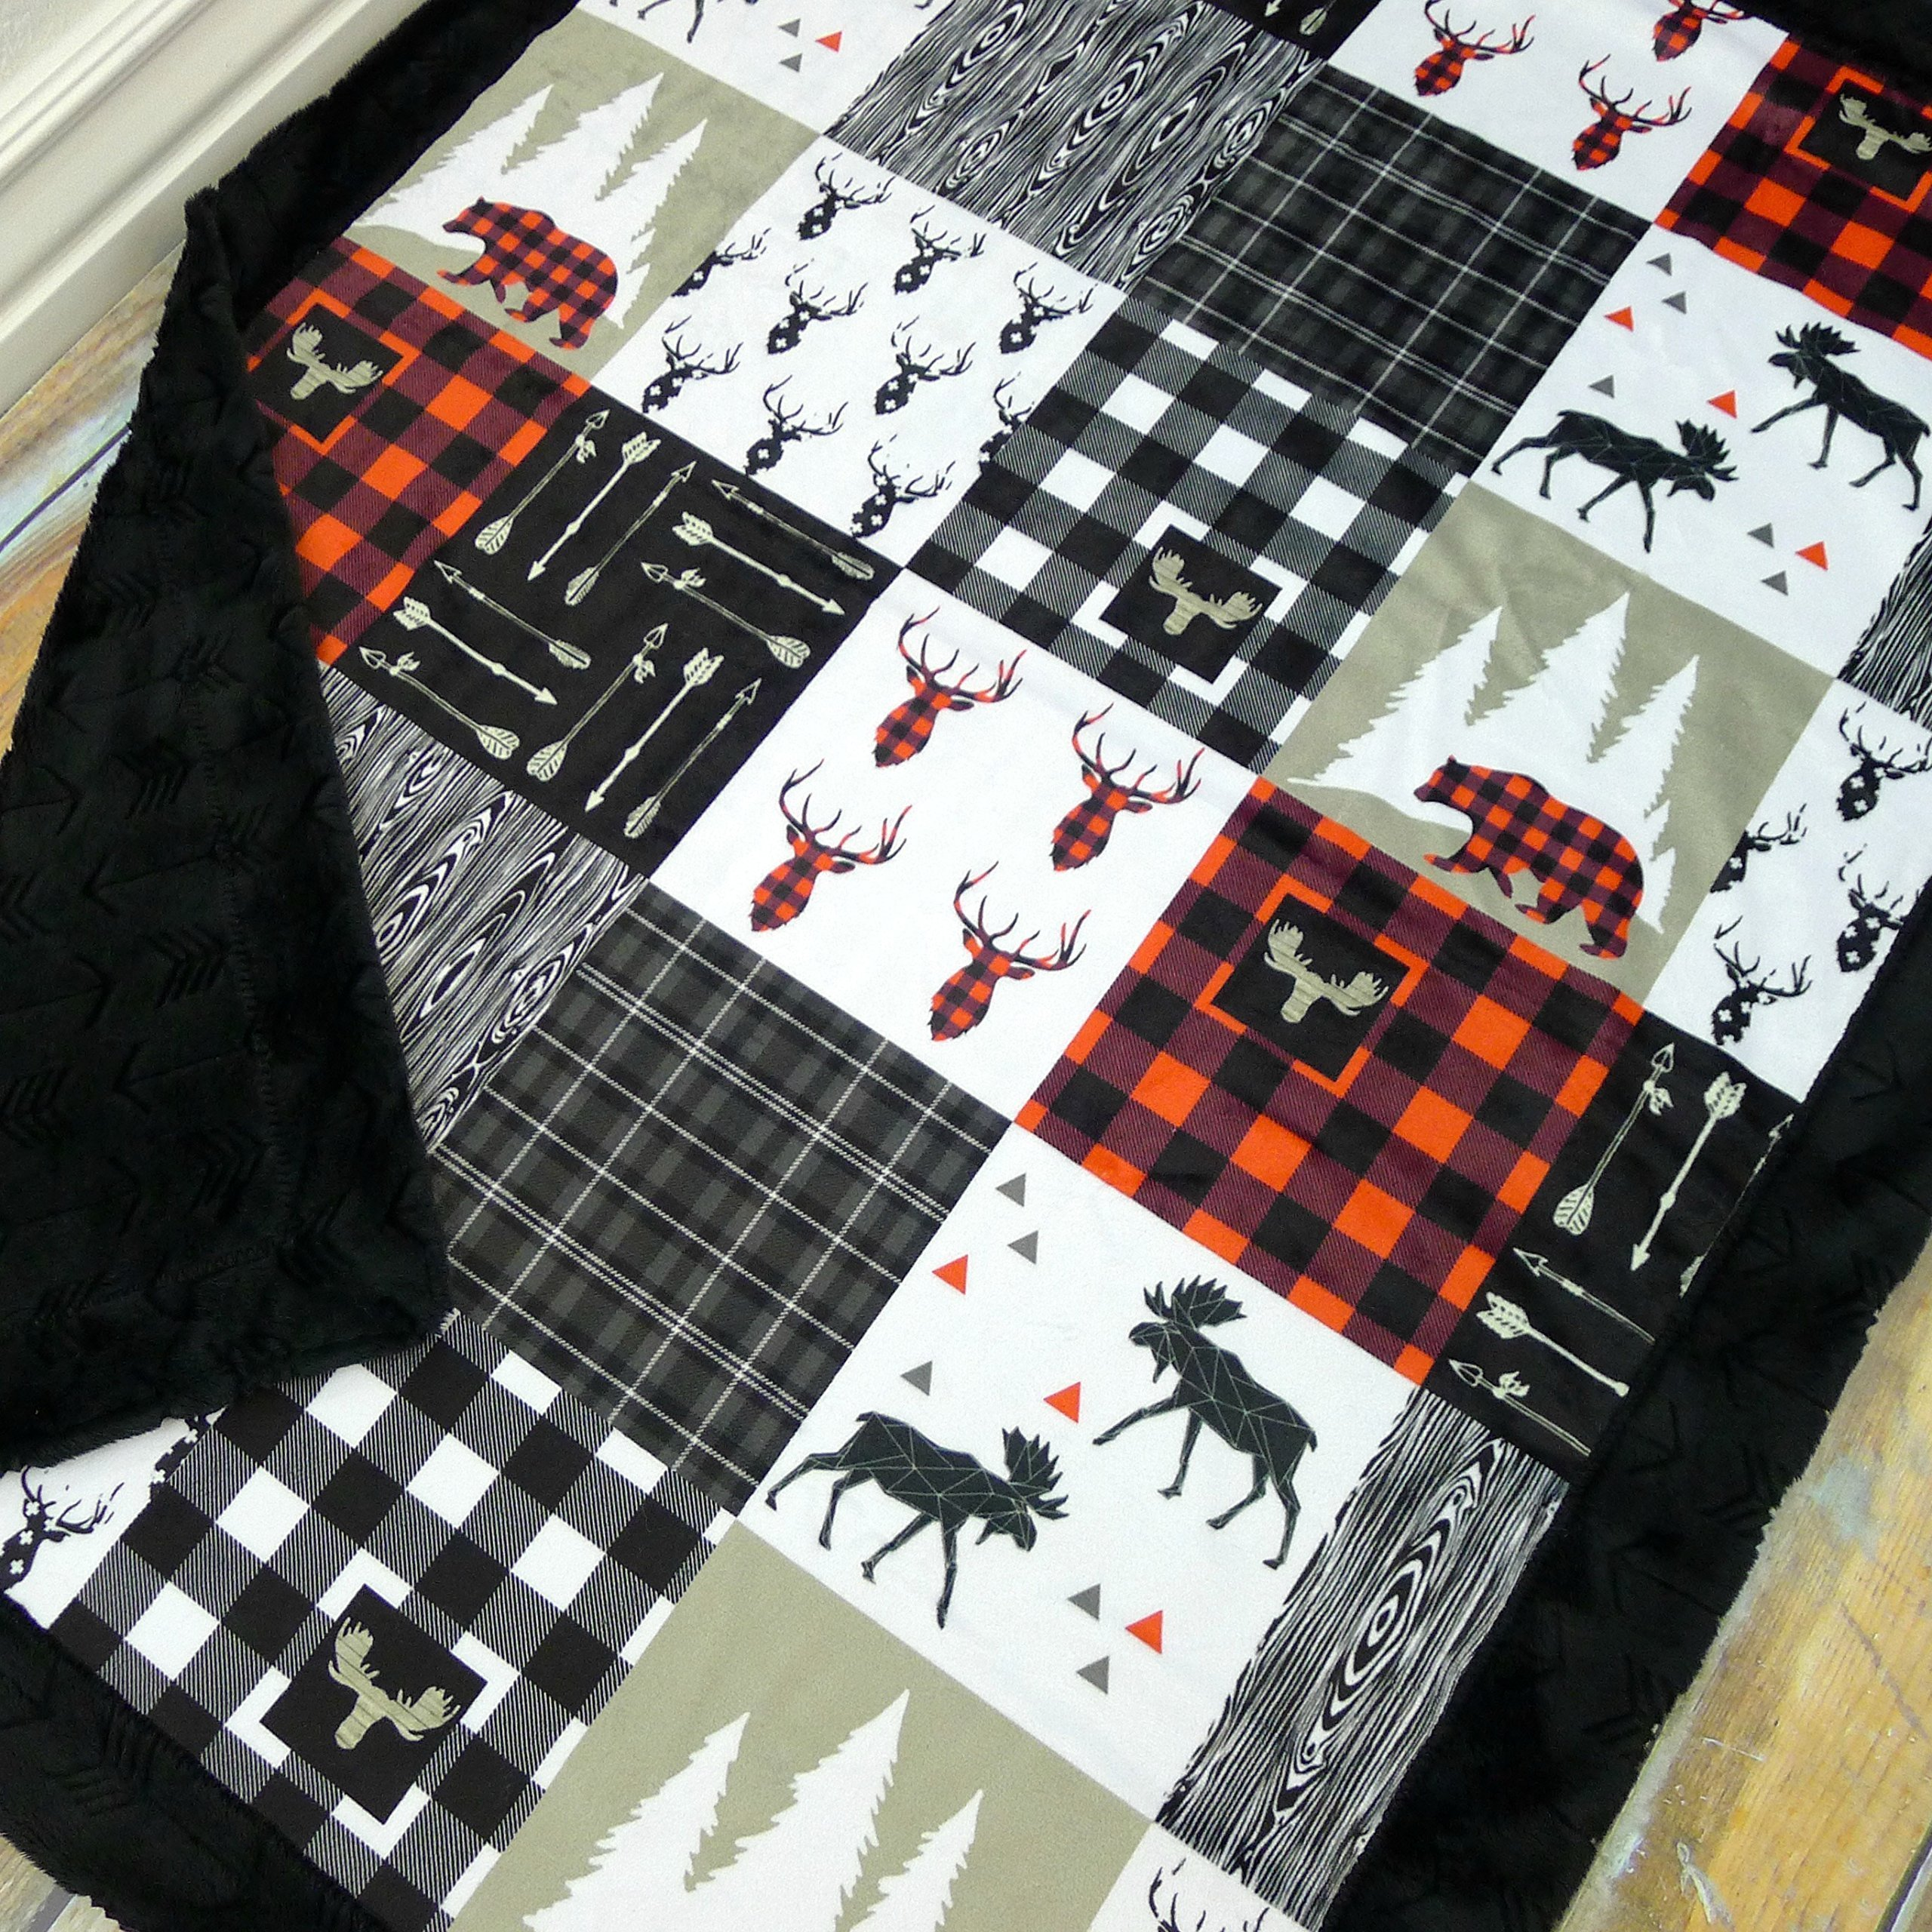 Baby Blanket with Double Minky - Lumberjack Baby Blanket with Buffalo Plaid, Moose, and Bears